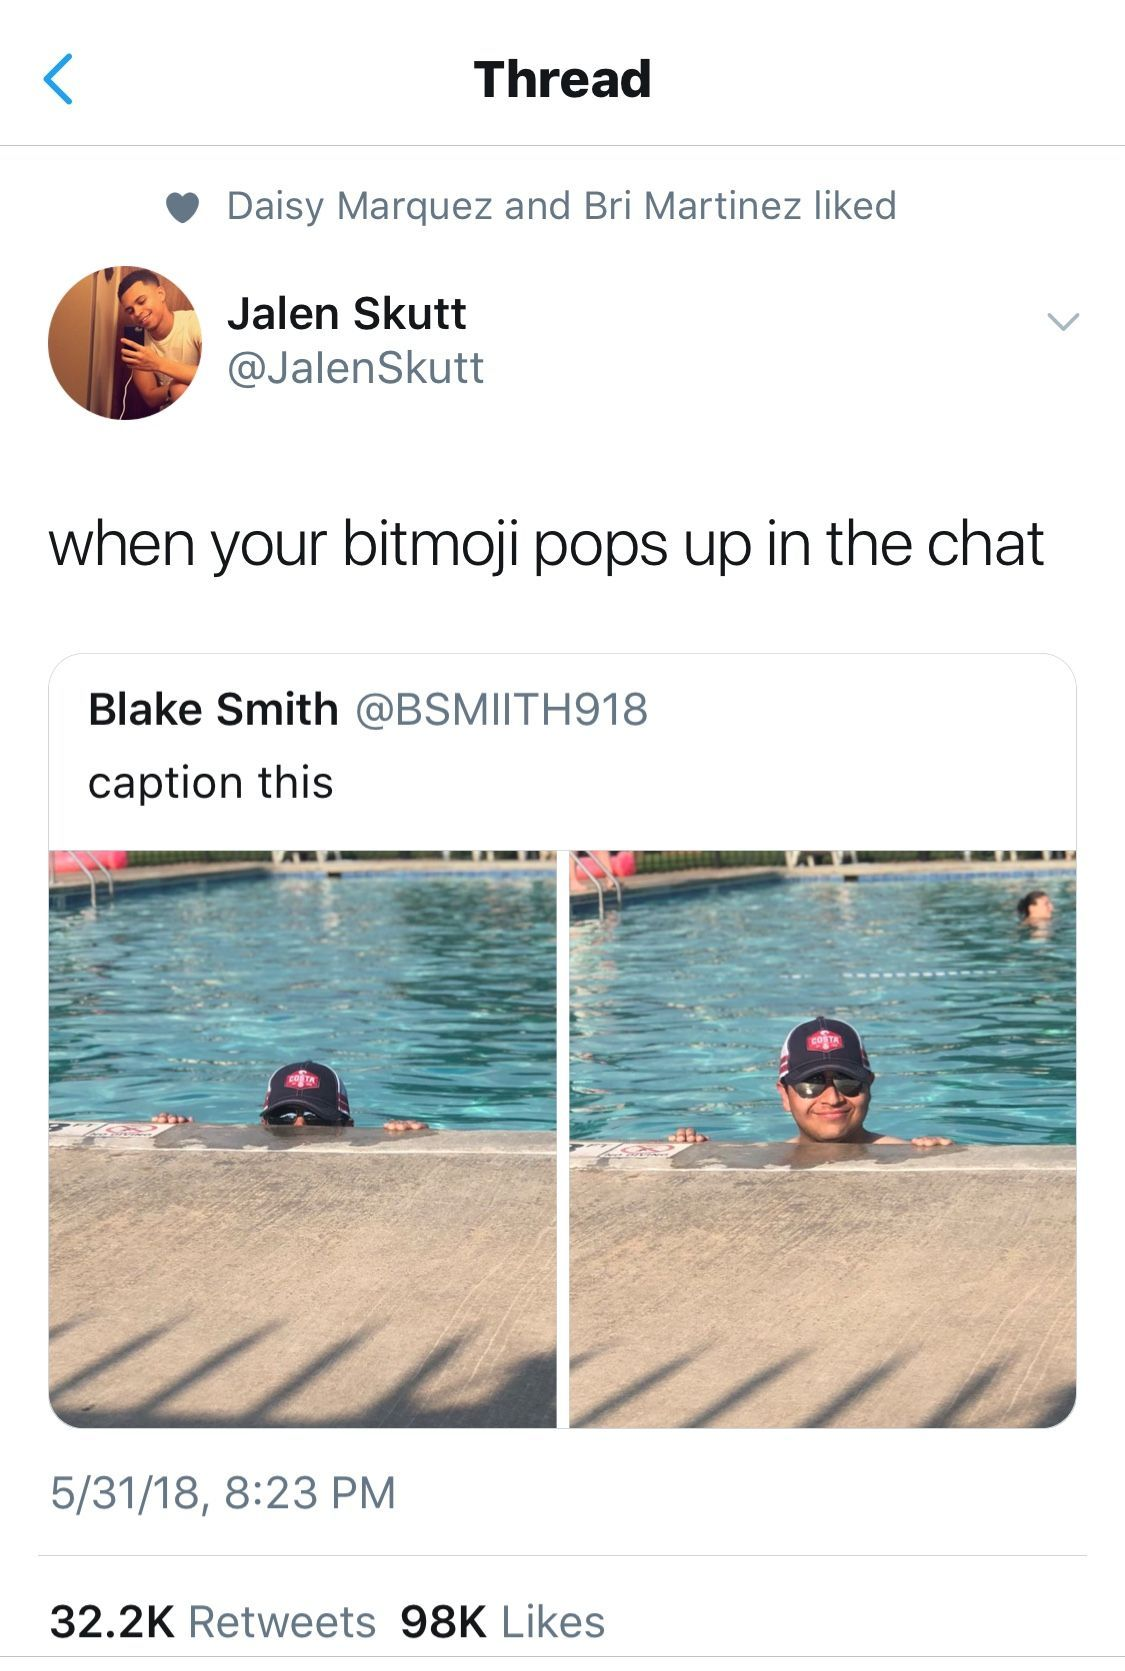 Not Funny Or Anything But I Have A Kid My School Named Blake Smith Funny Group Chat Names Funny Relatable Memes Stupid Funny